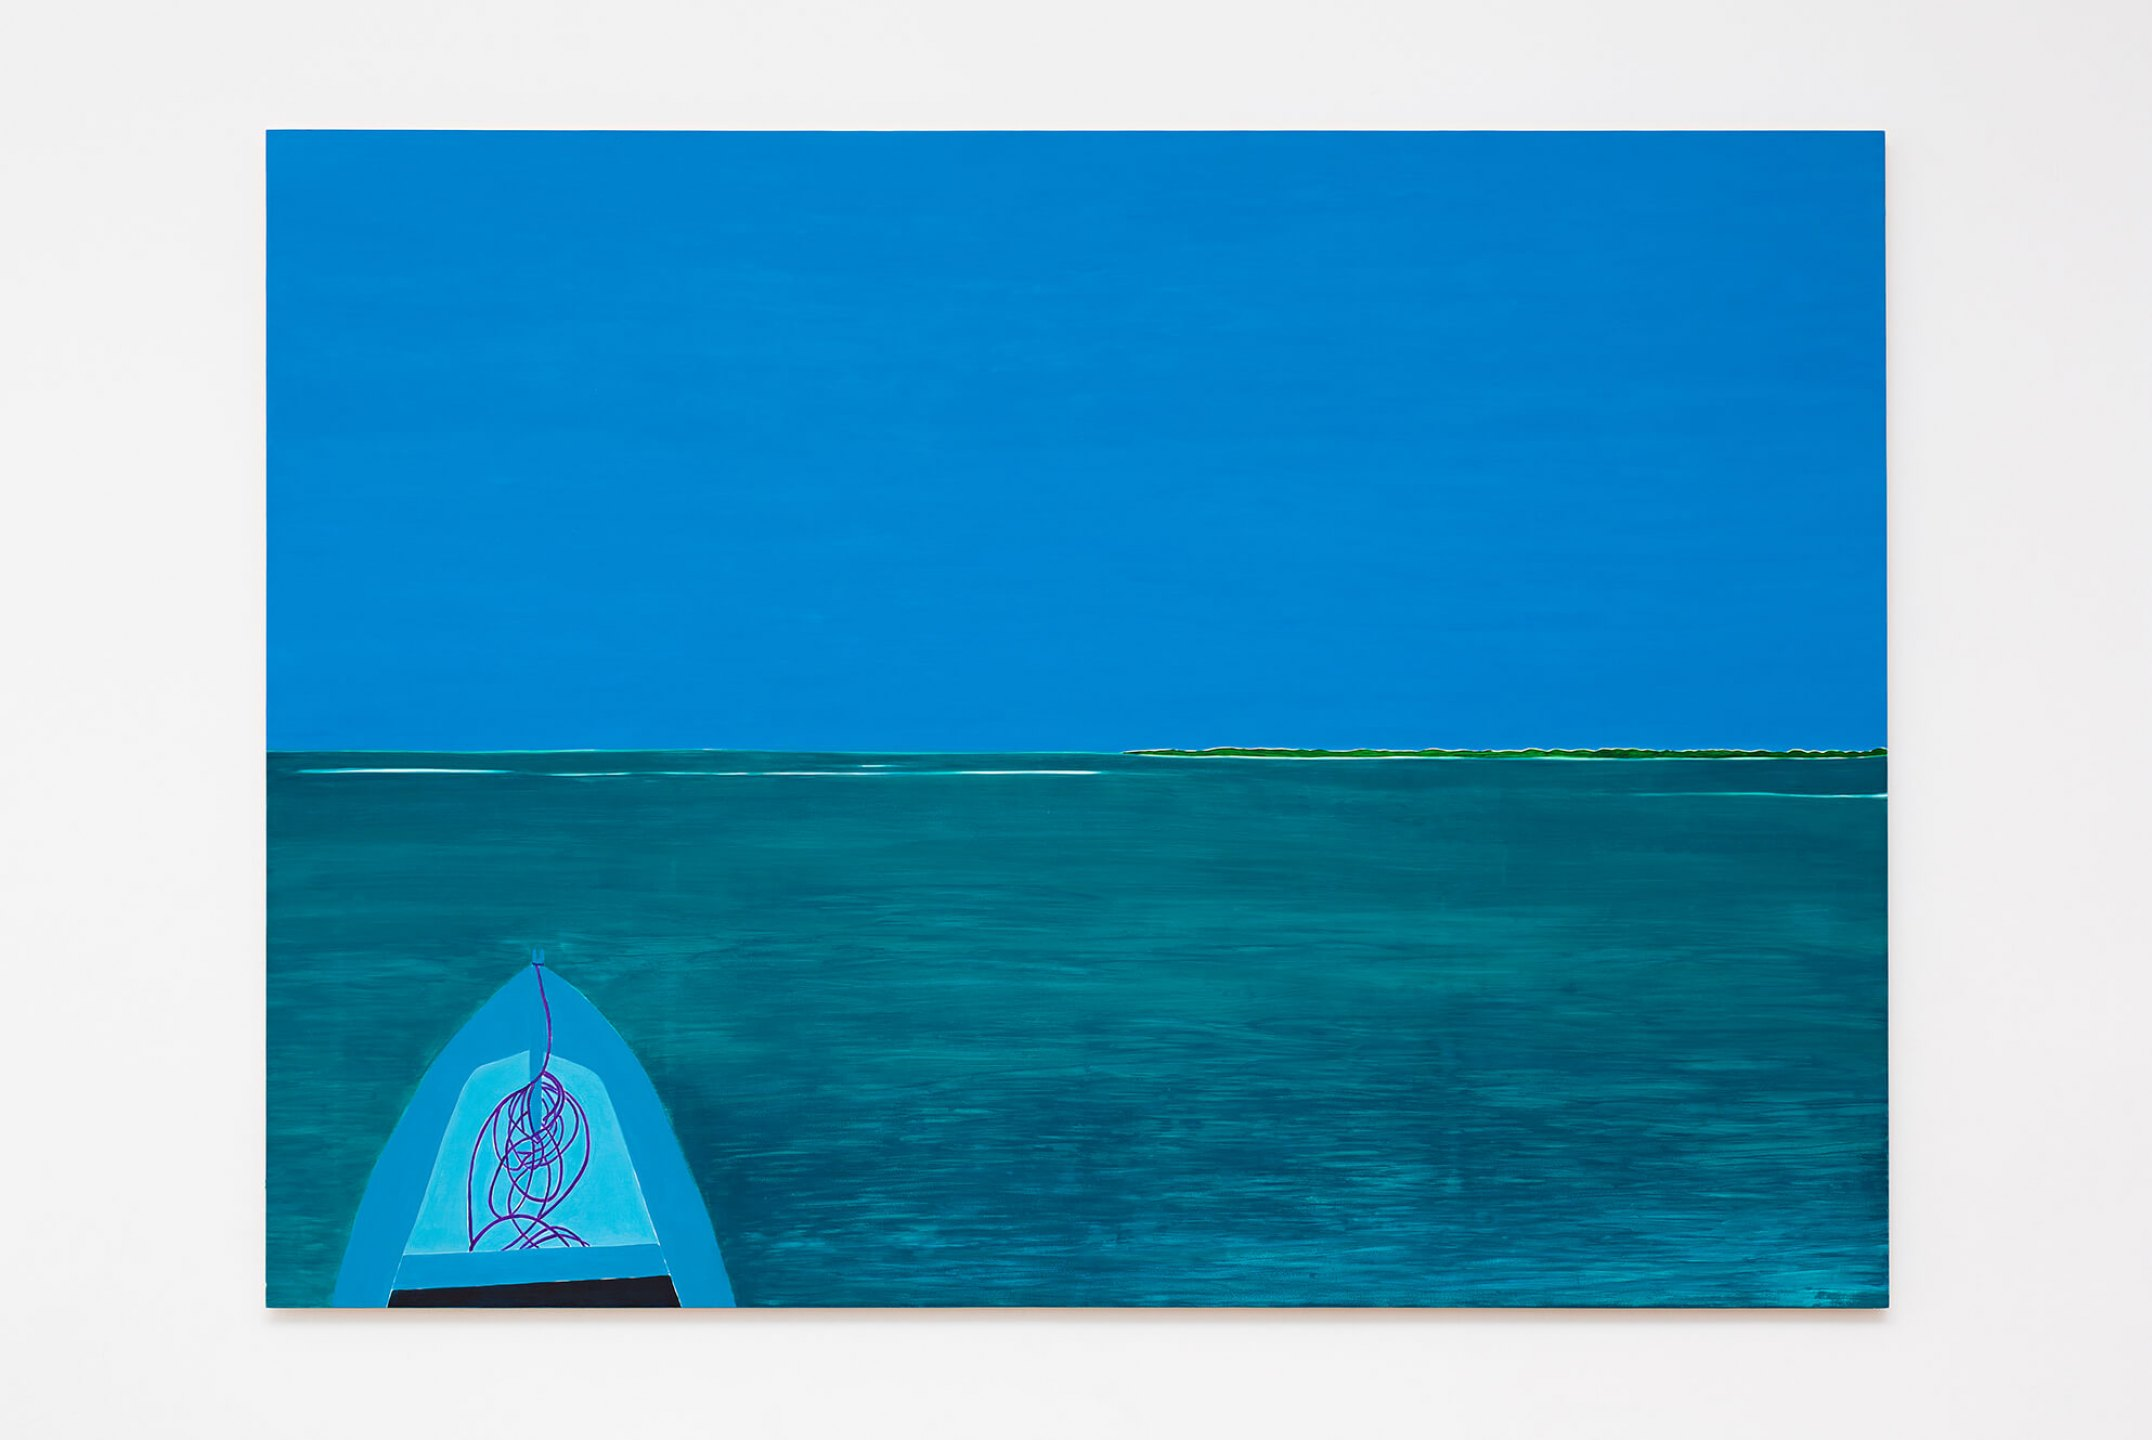 Patricia Leite, <em>Mr. Djalma's canoe, </em>2014, oil on wood, 160 × 220 cm - Mendes Wood DM